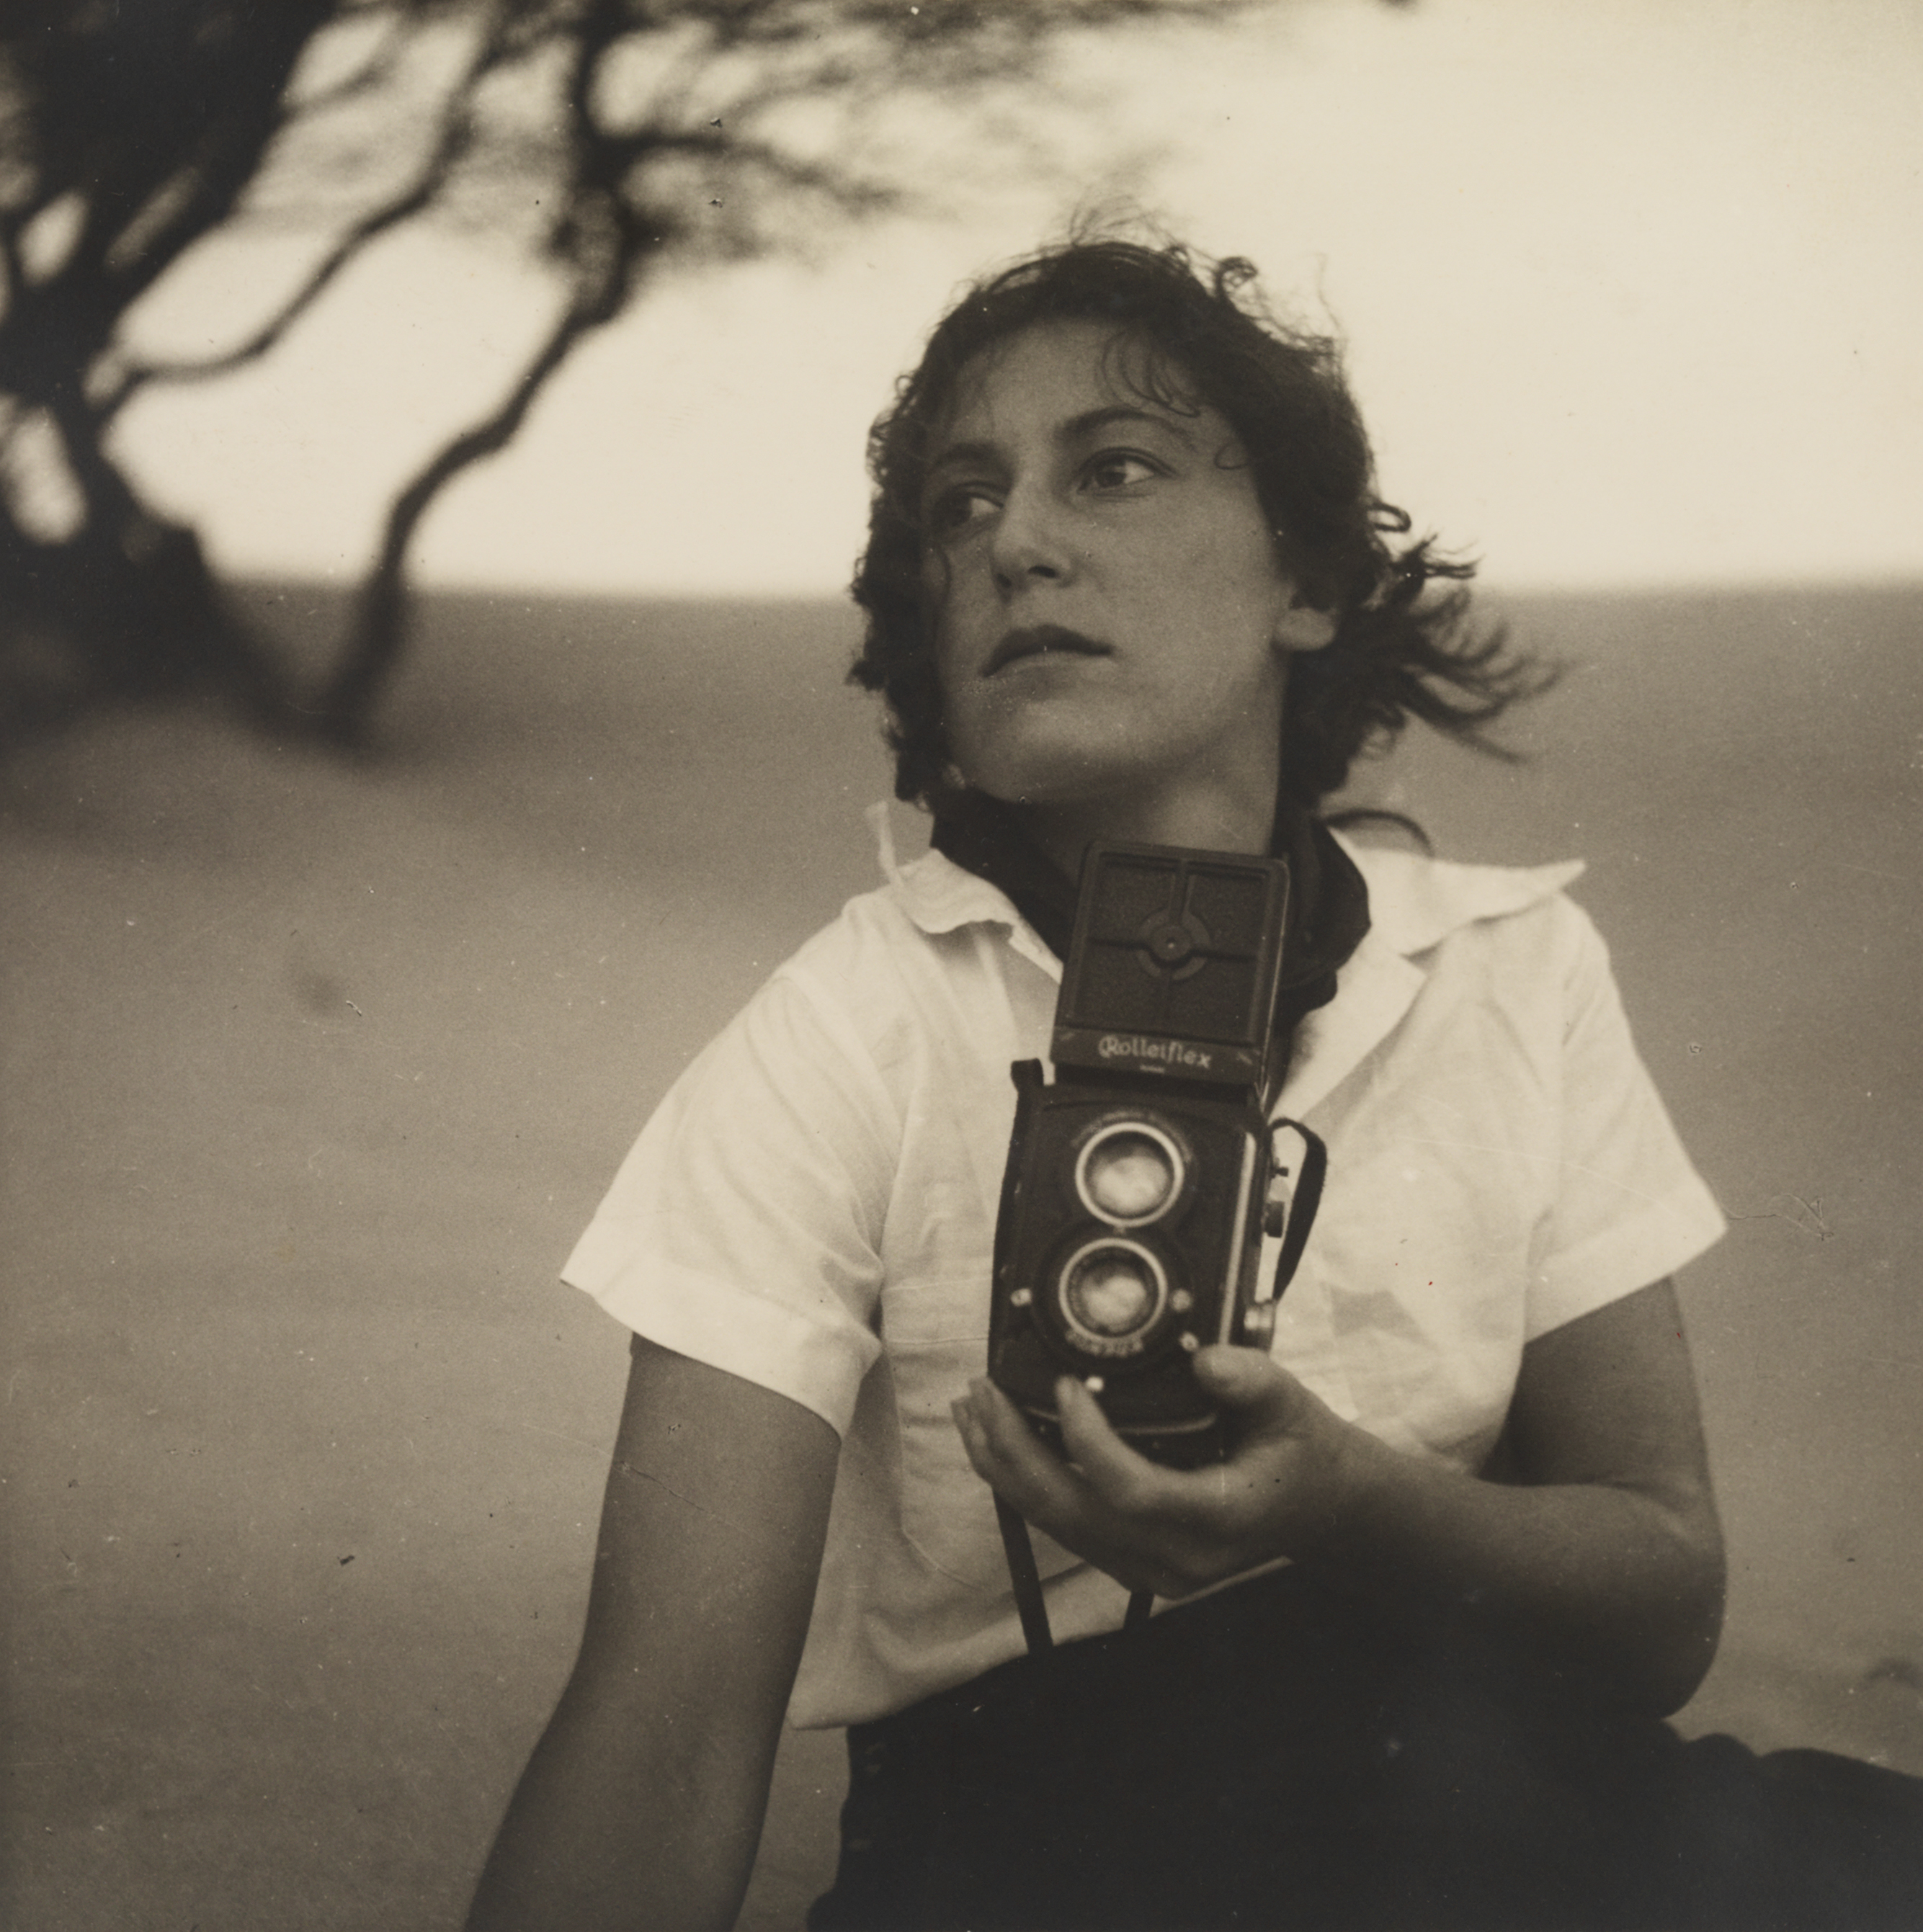 A sepia photographic portrait of a woman sitting on a beach gazing off to the size, holding an old camera up in front of her